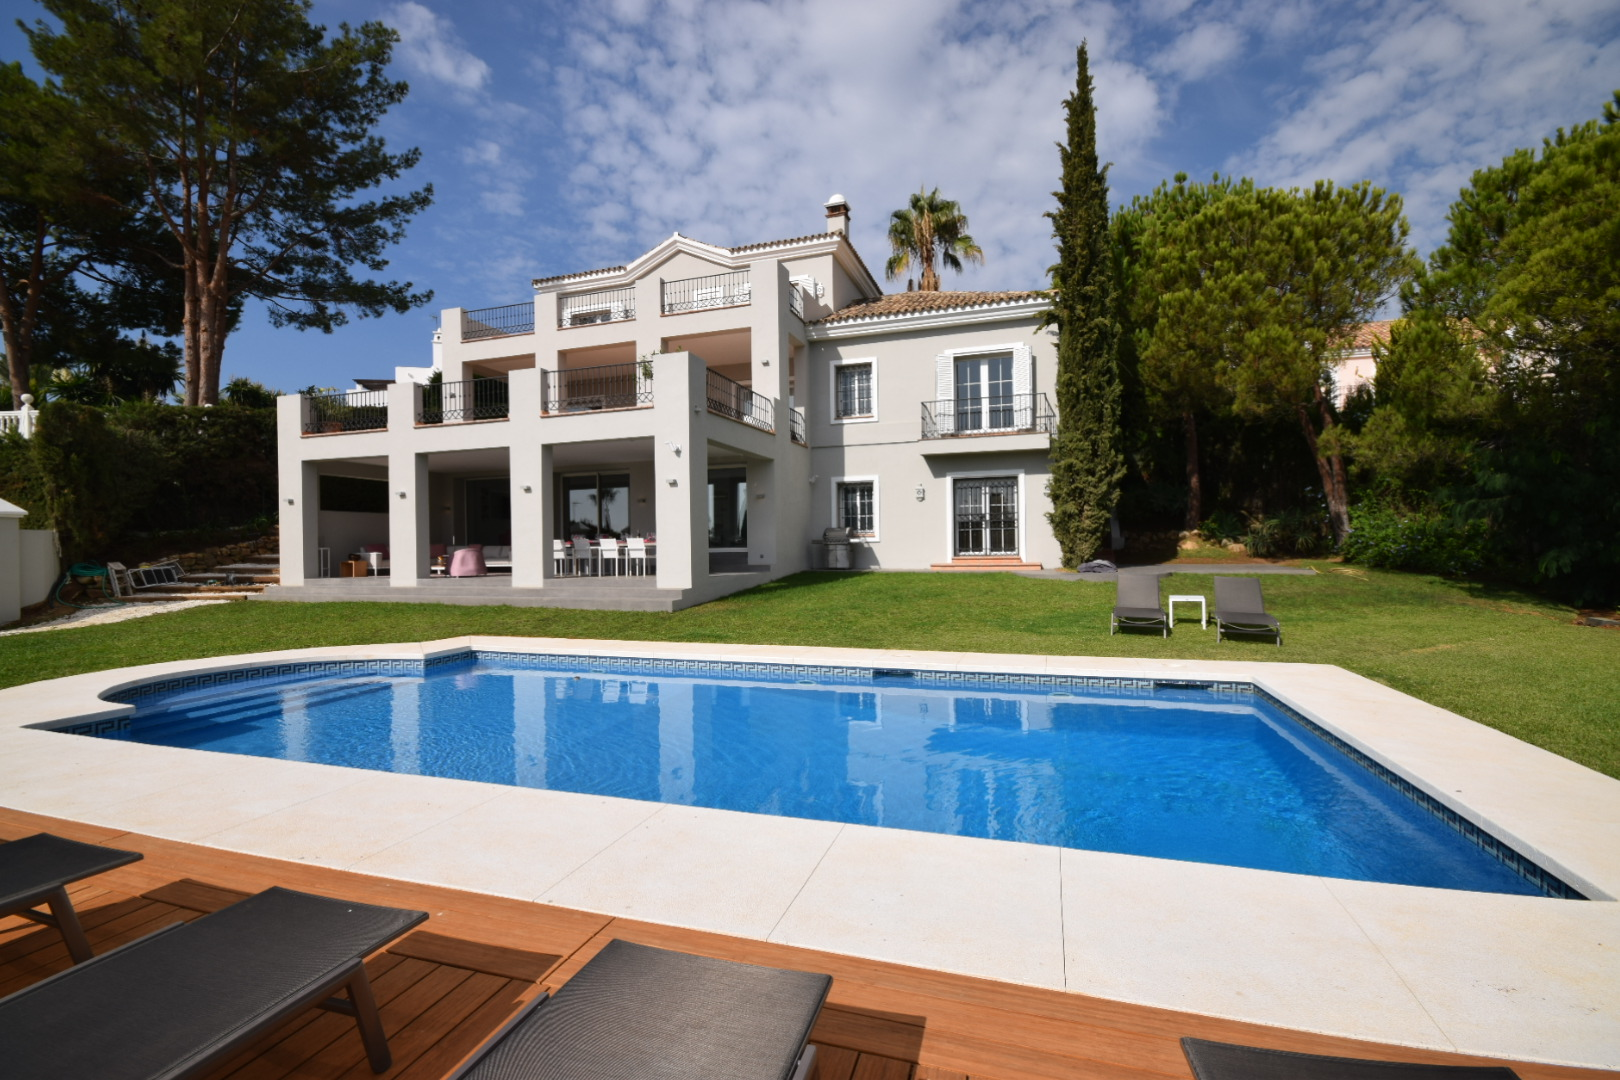 AH2756 - Ideal 5 bed Family Villa With Gym and Pool Table